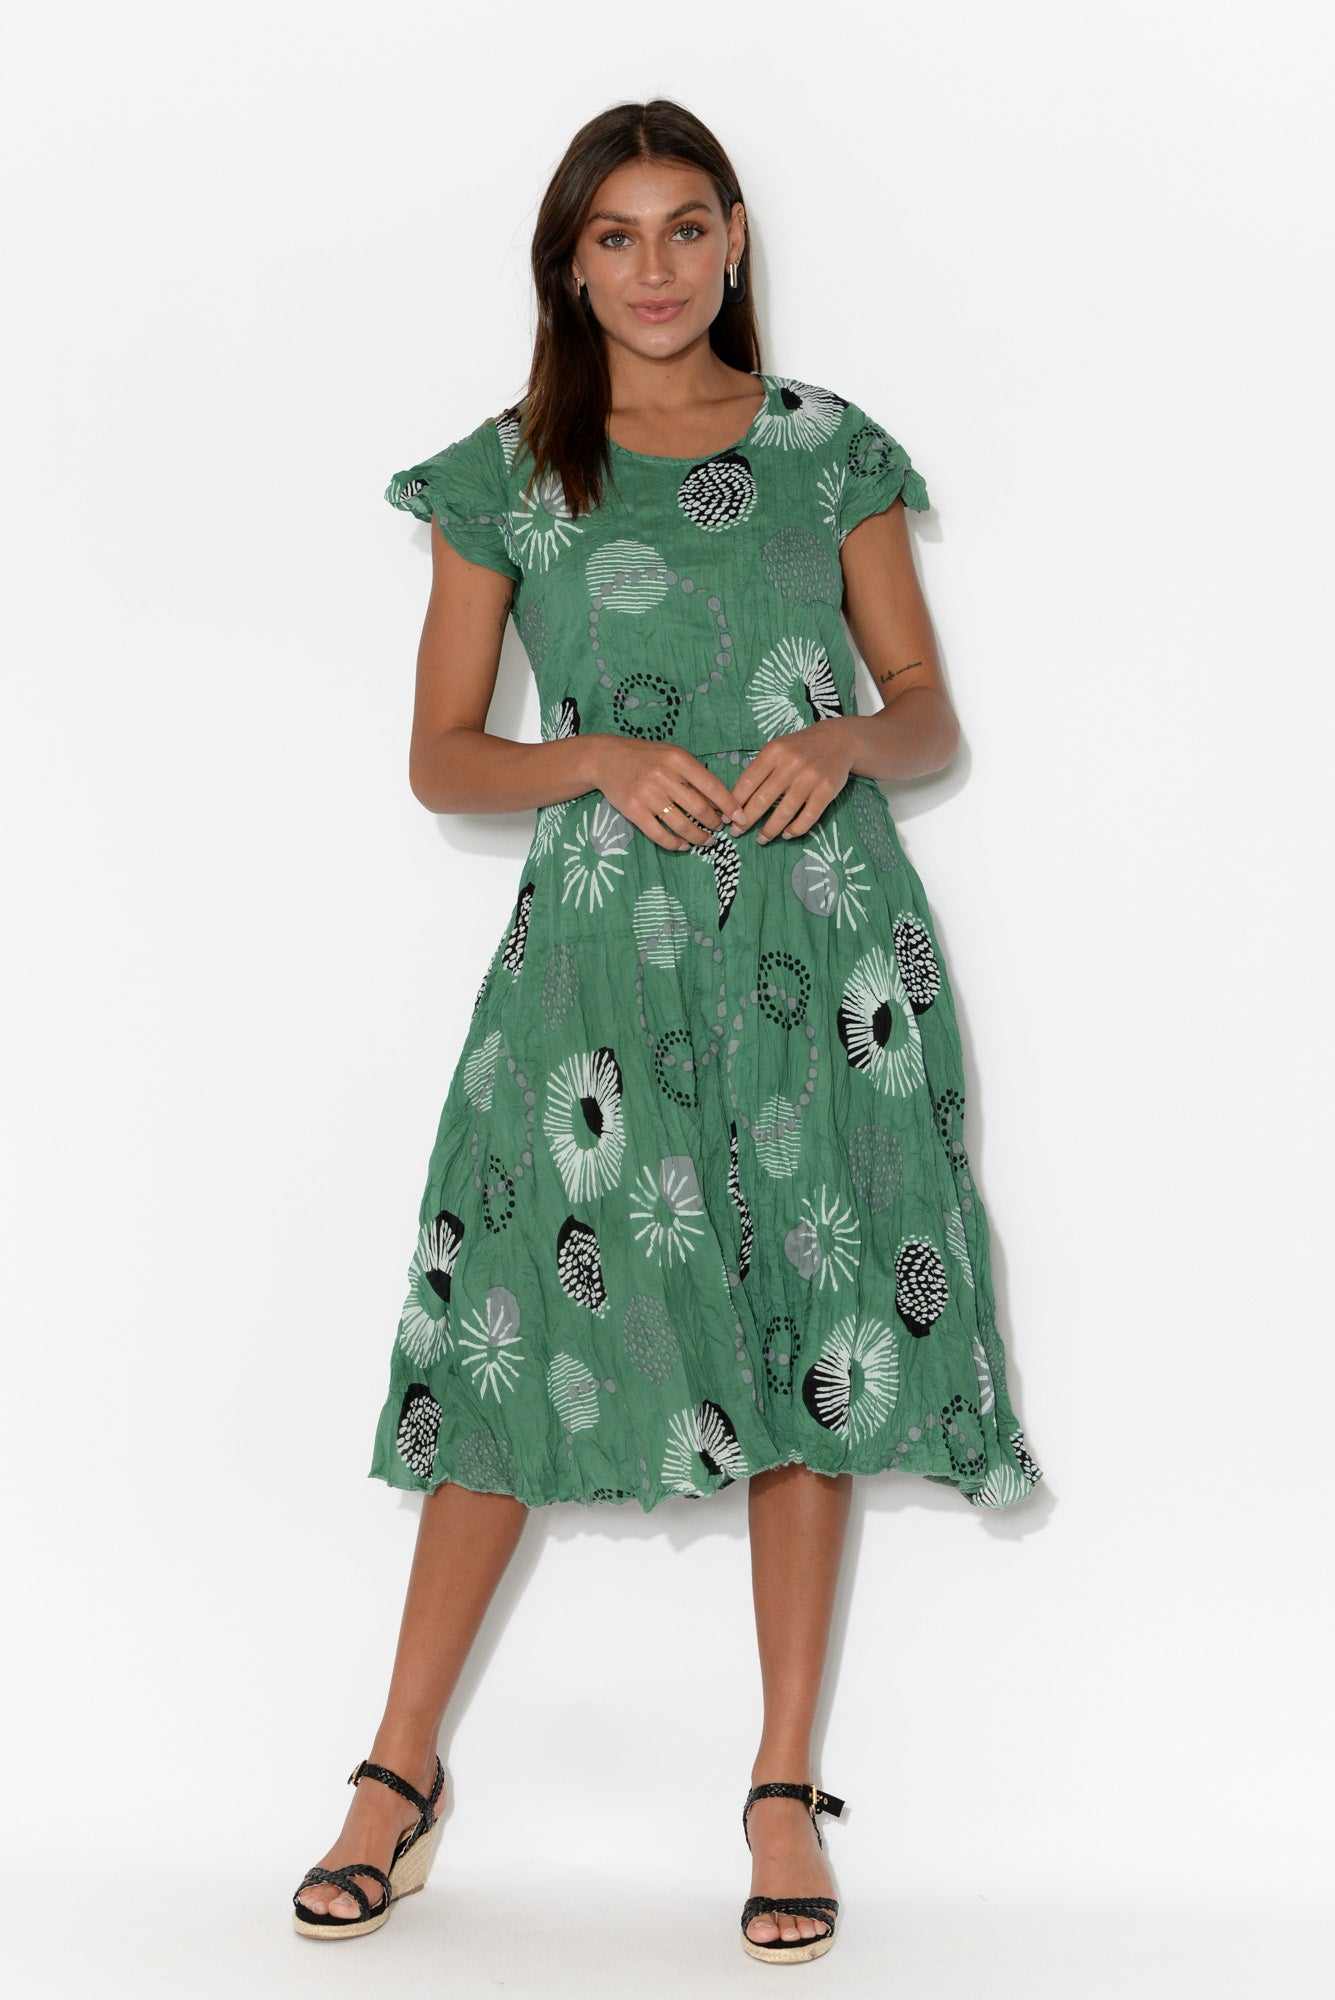 Jemima Teal Floral Crinkle Cotton Dress